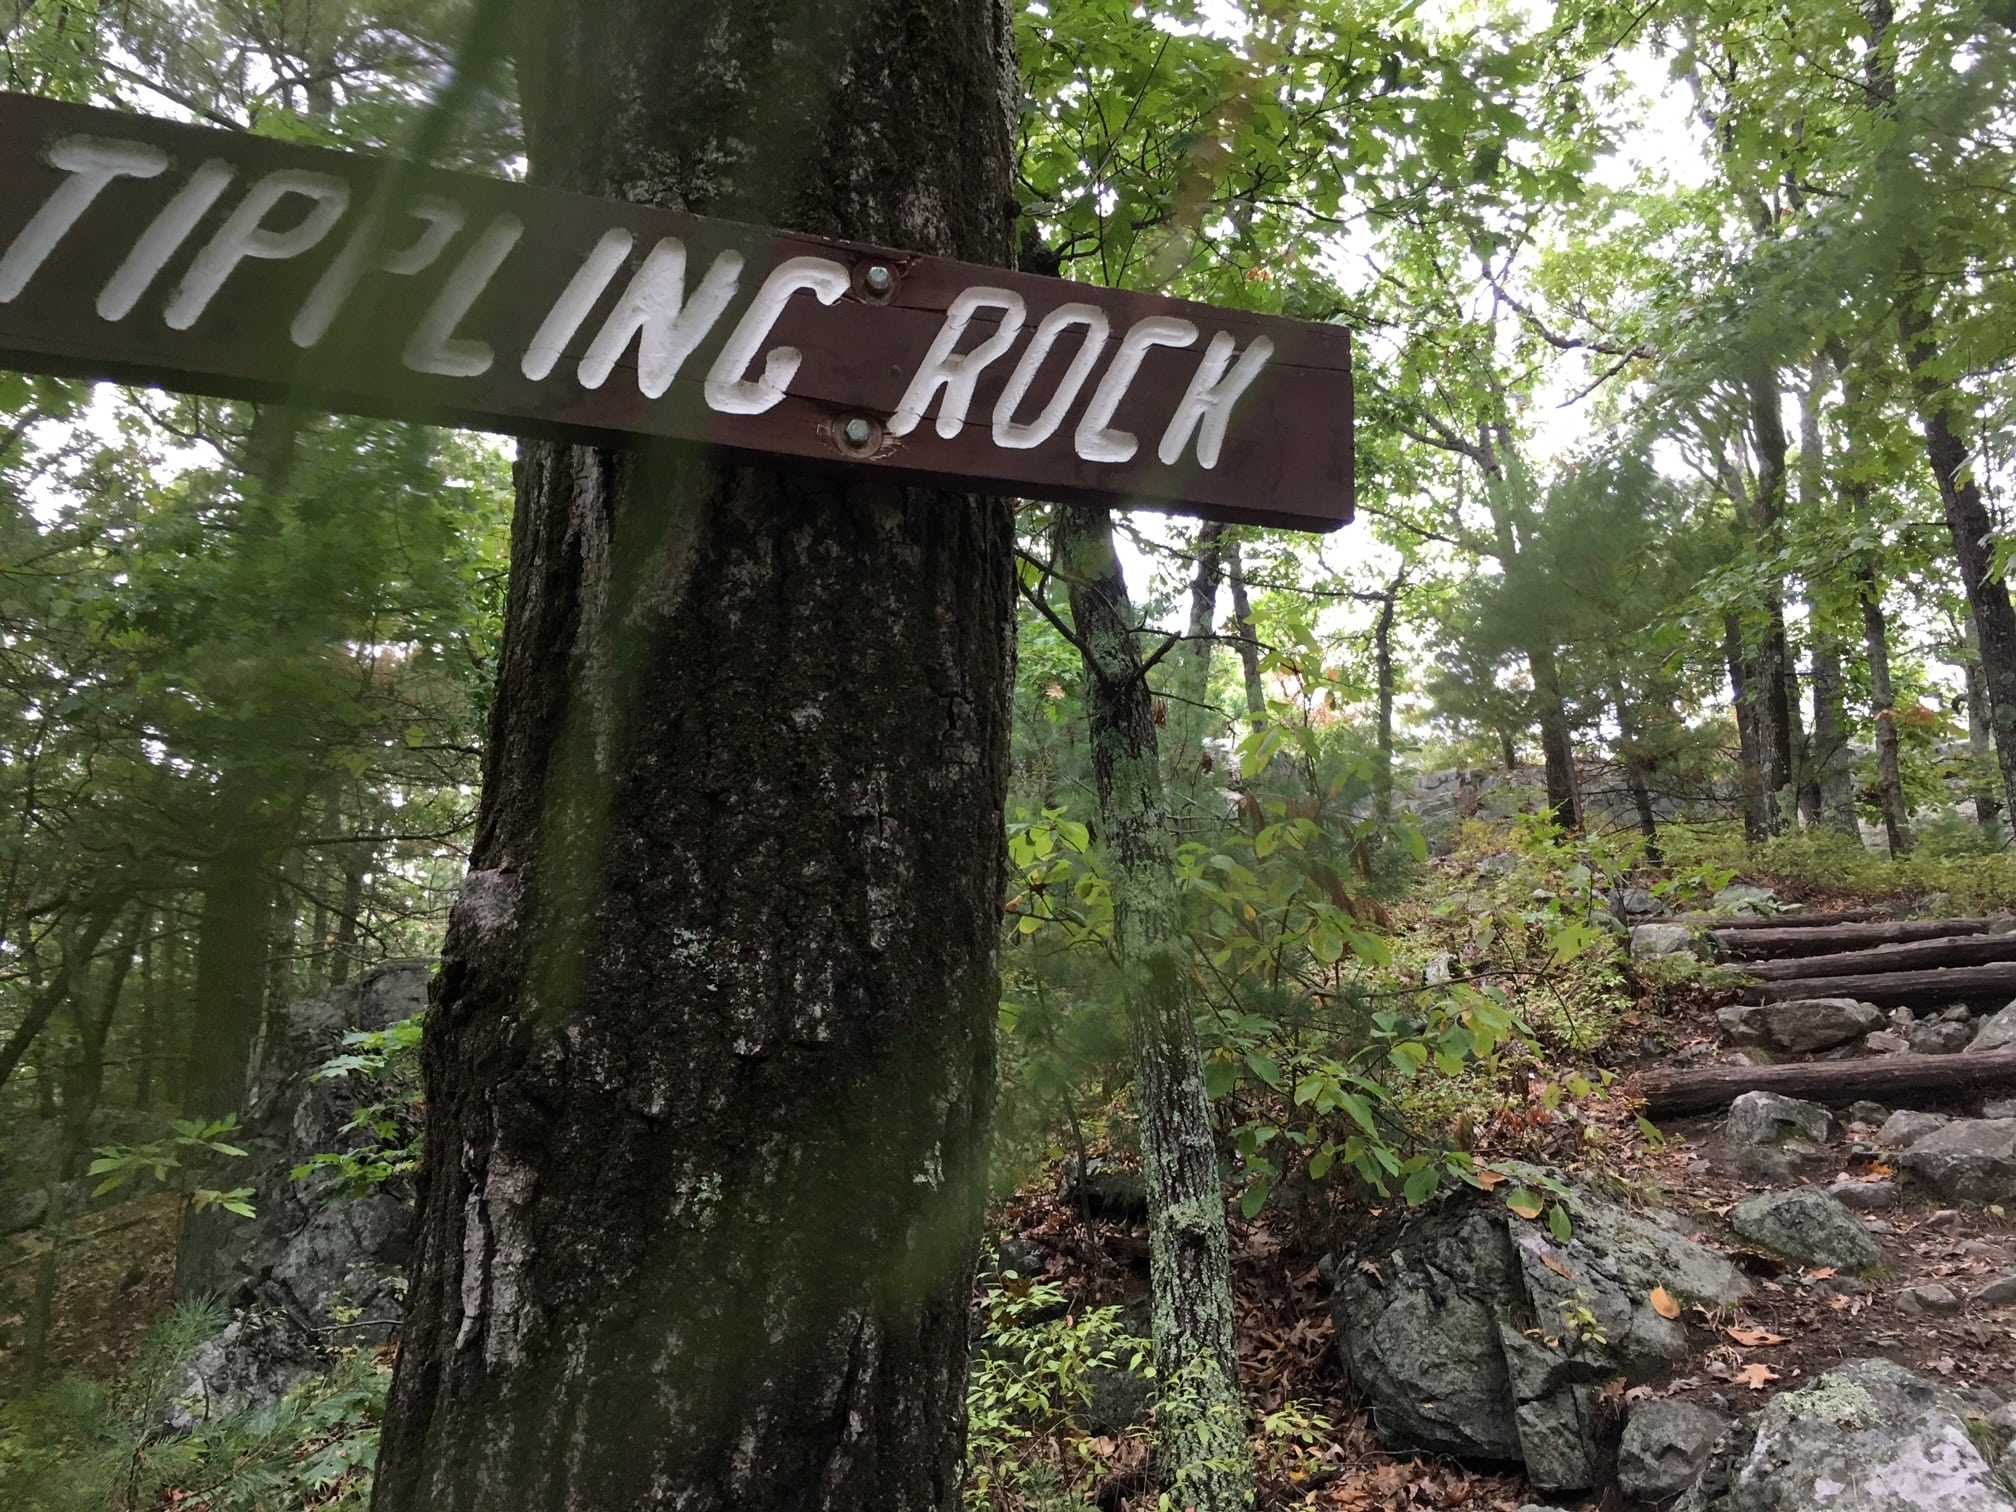 See the Tipling Rock sign. You're almost to the top.